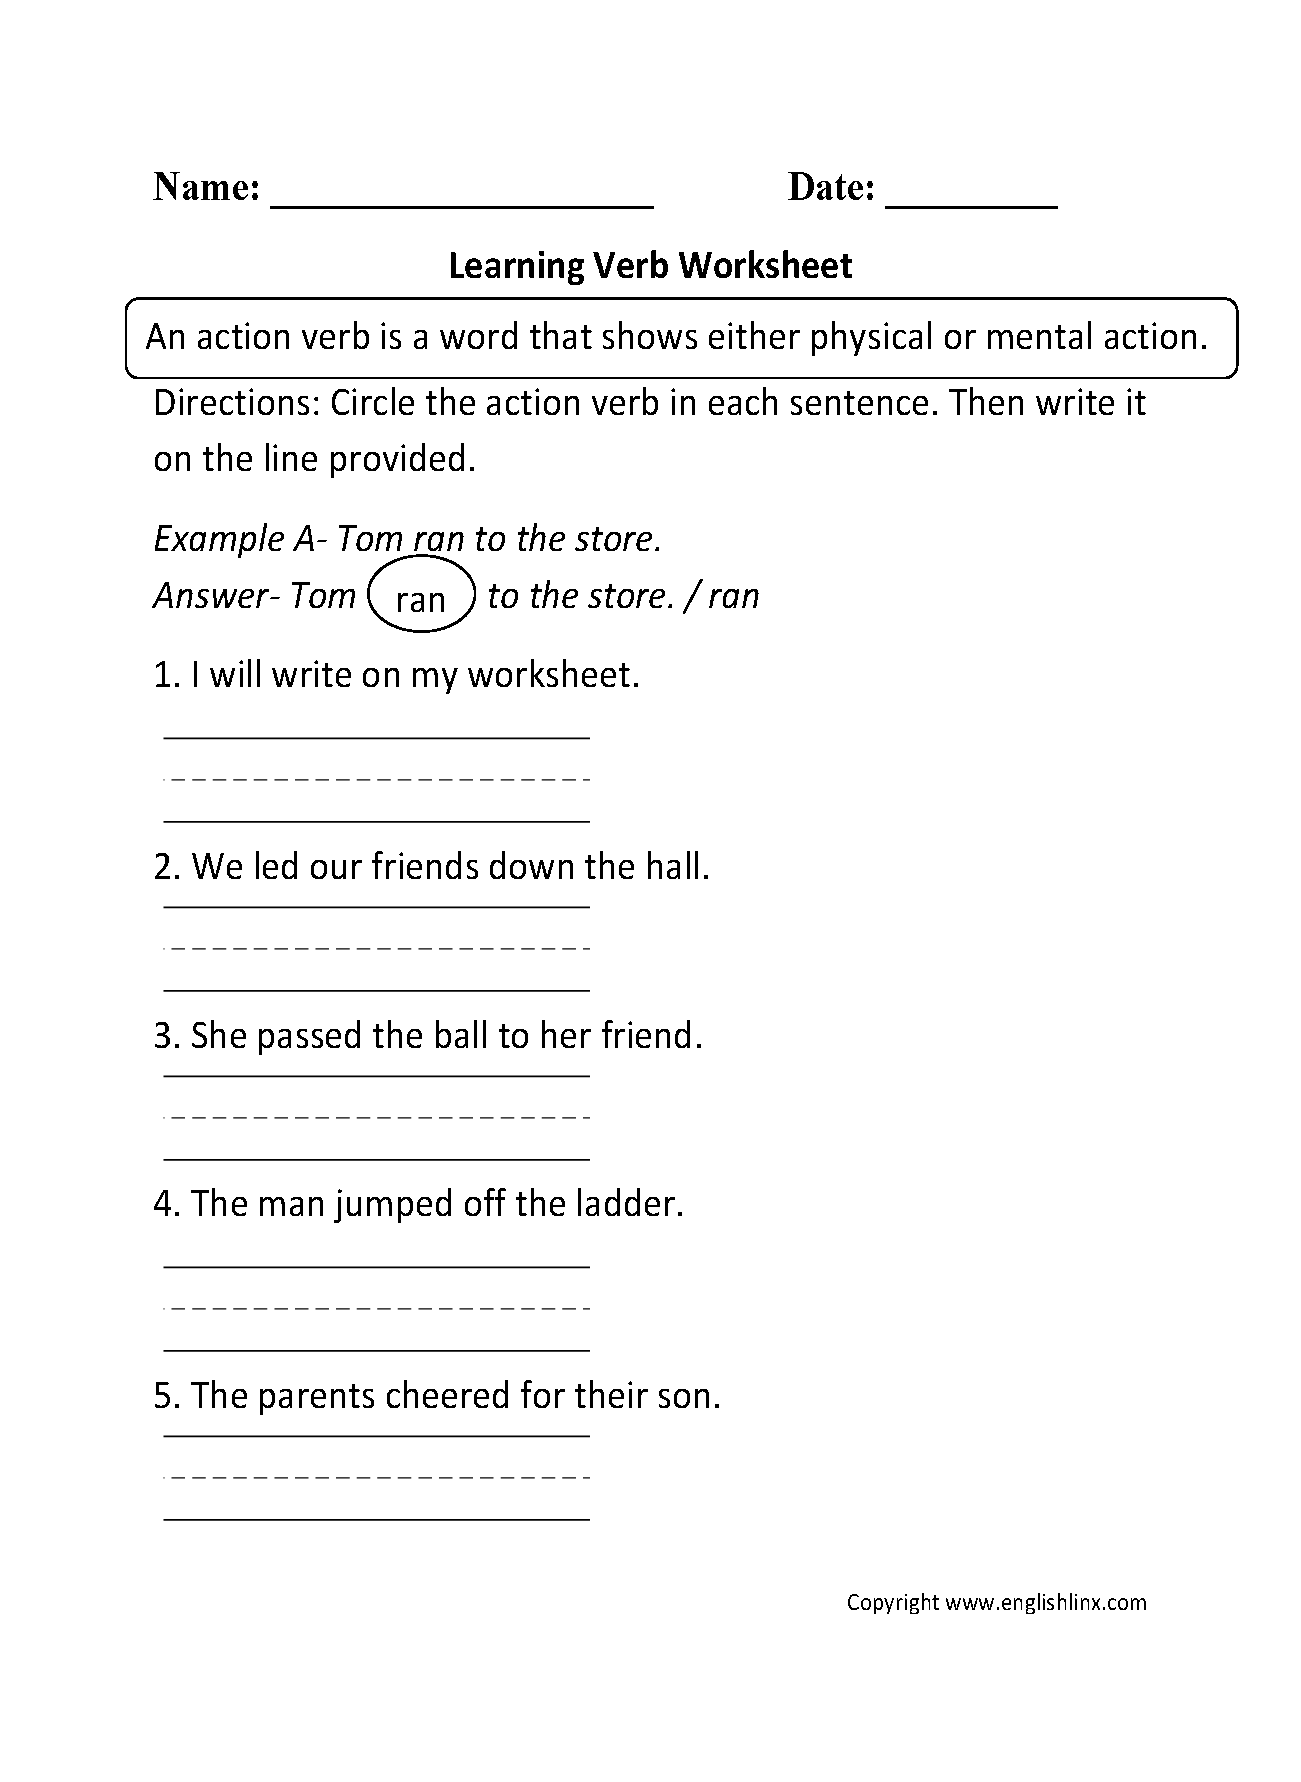 worksheet Then Than Worksheet learning verb worksheet teach pinterest worksheets english action verbs are that describe actions and things taking place rather than states these for st